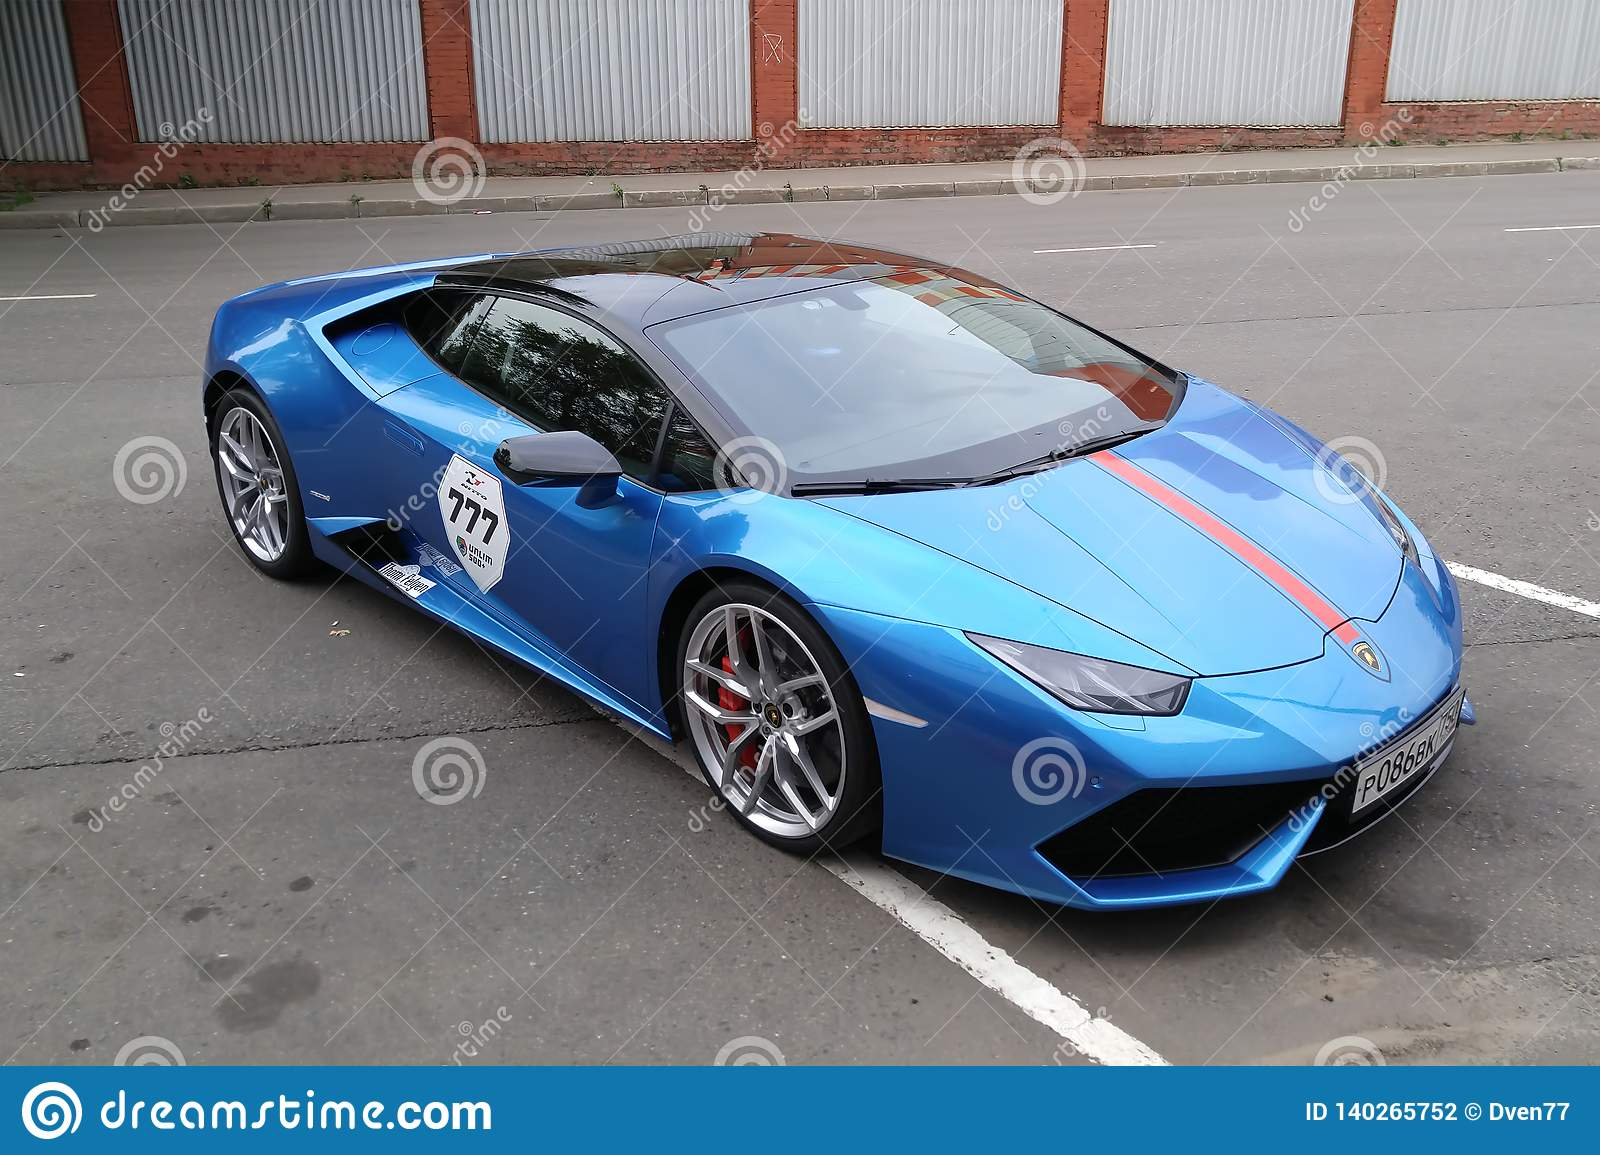 Moscow Autumn 2018 Bright Blue Lamborghini Huracan Parked On The